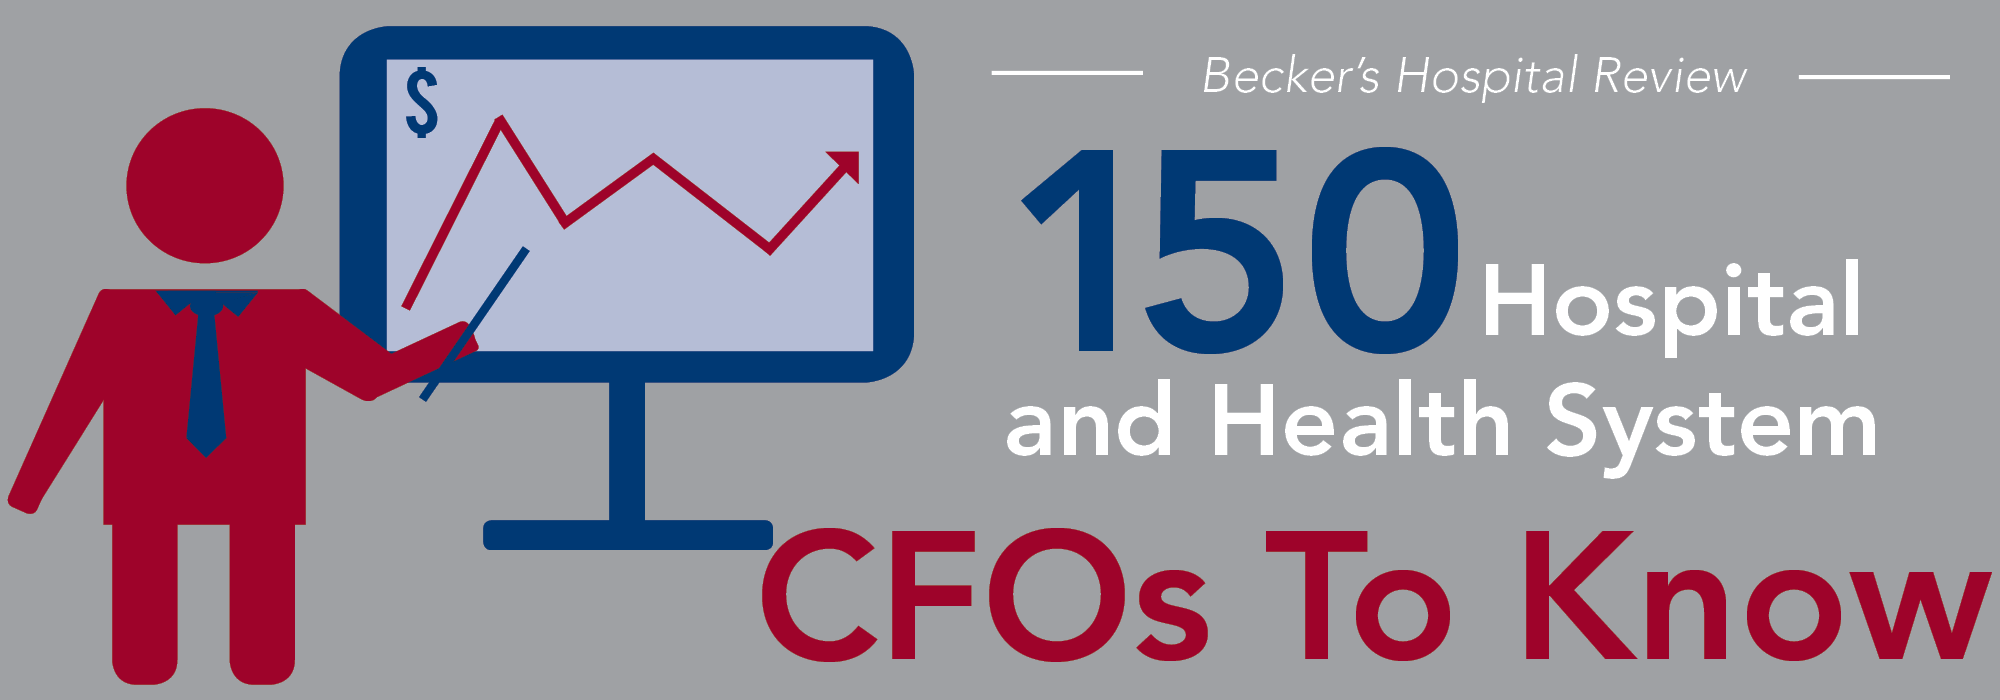 CFOs-to-know-2016